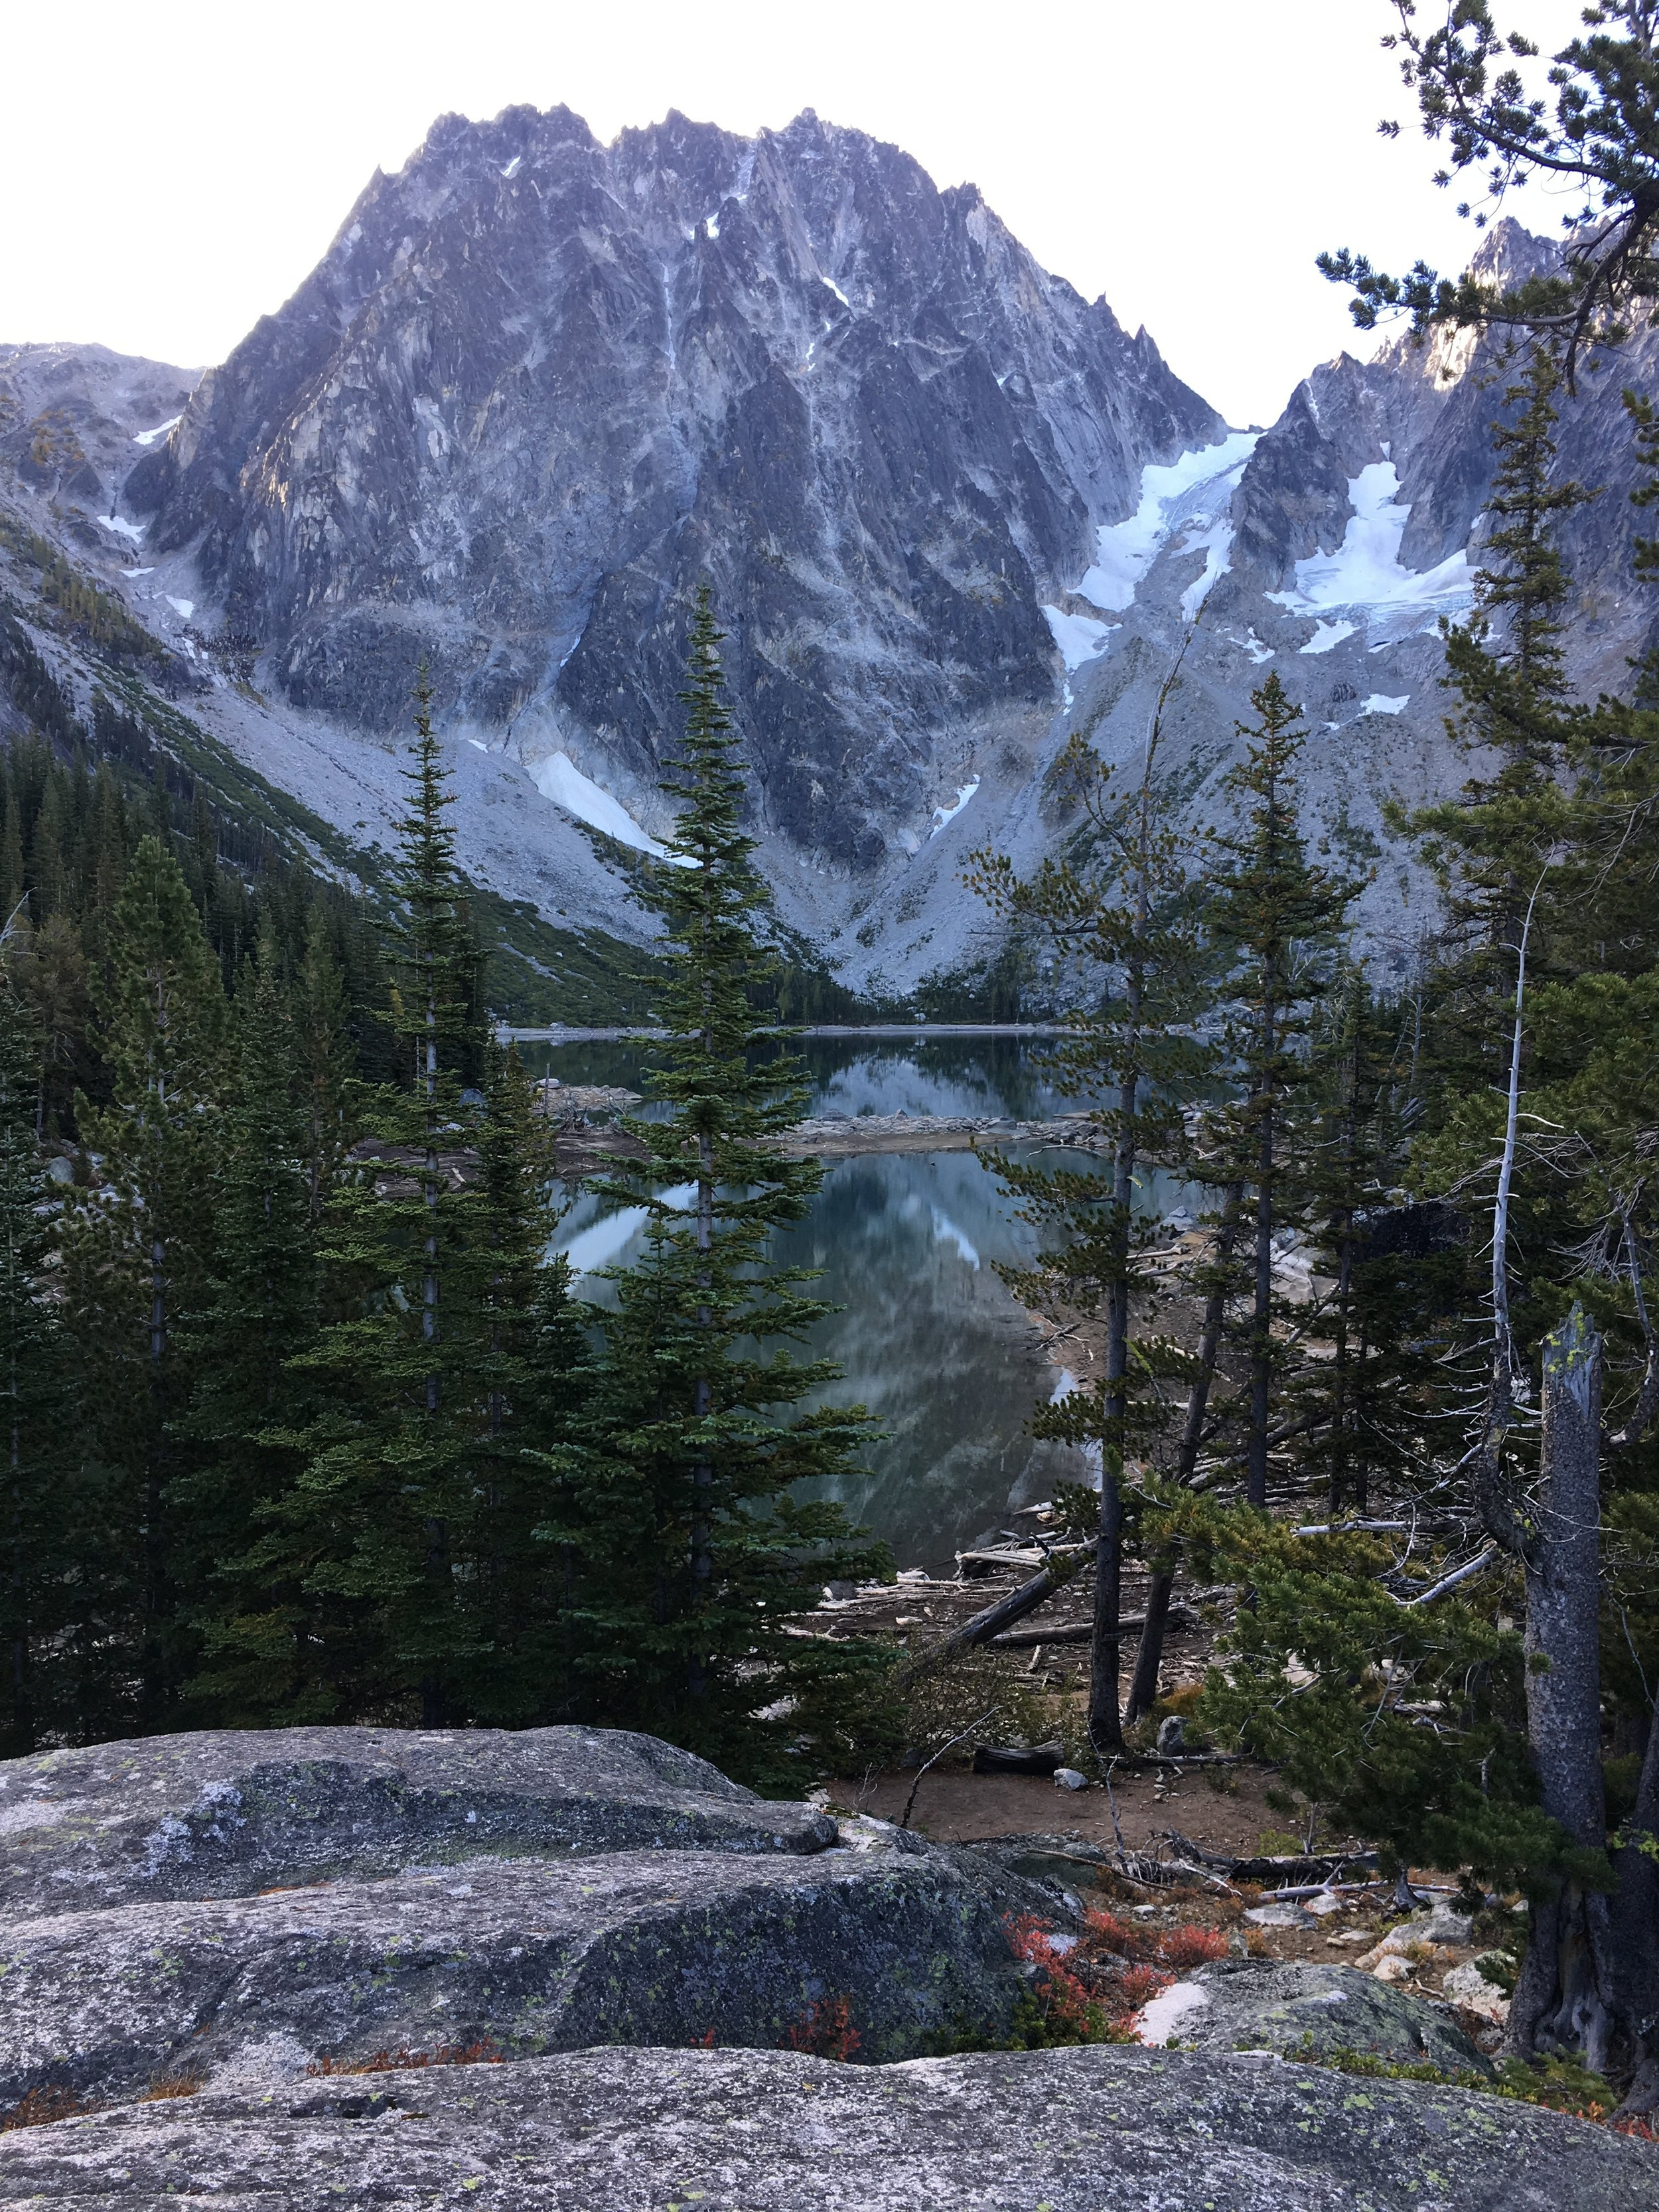 Hiking through Altitude Sickness in The Enchantments